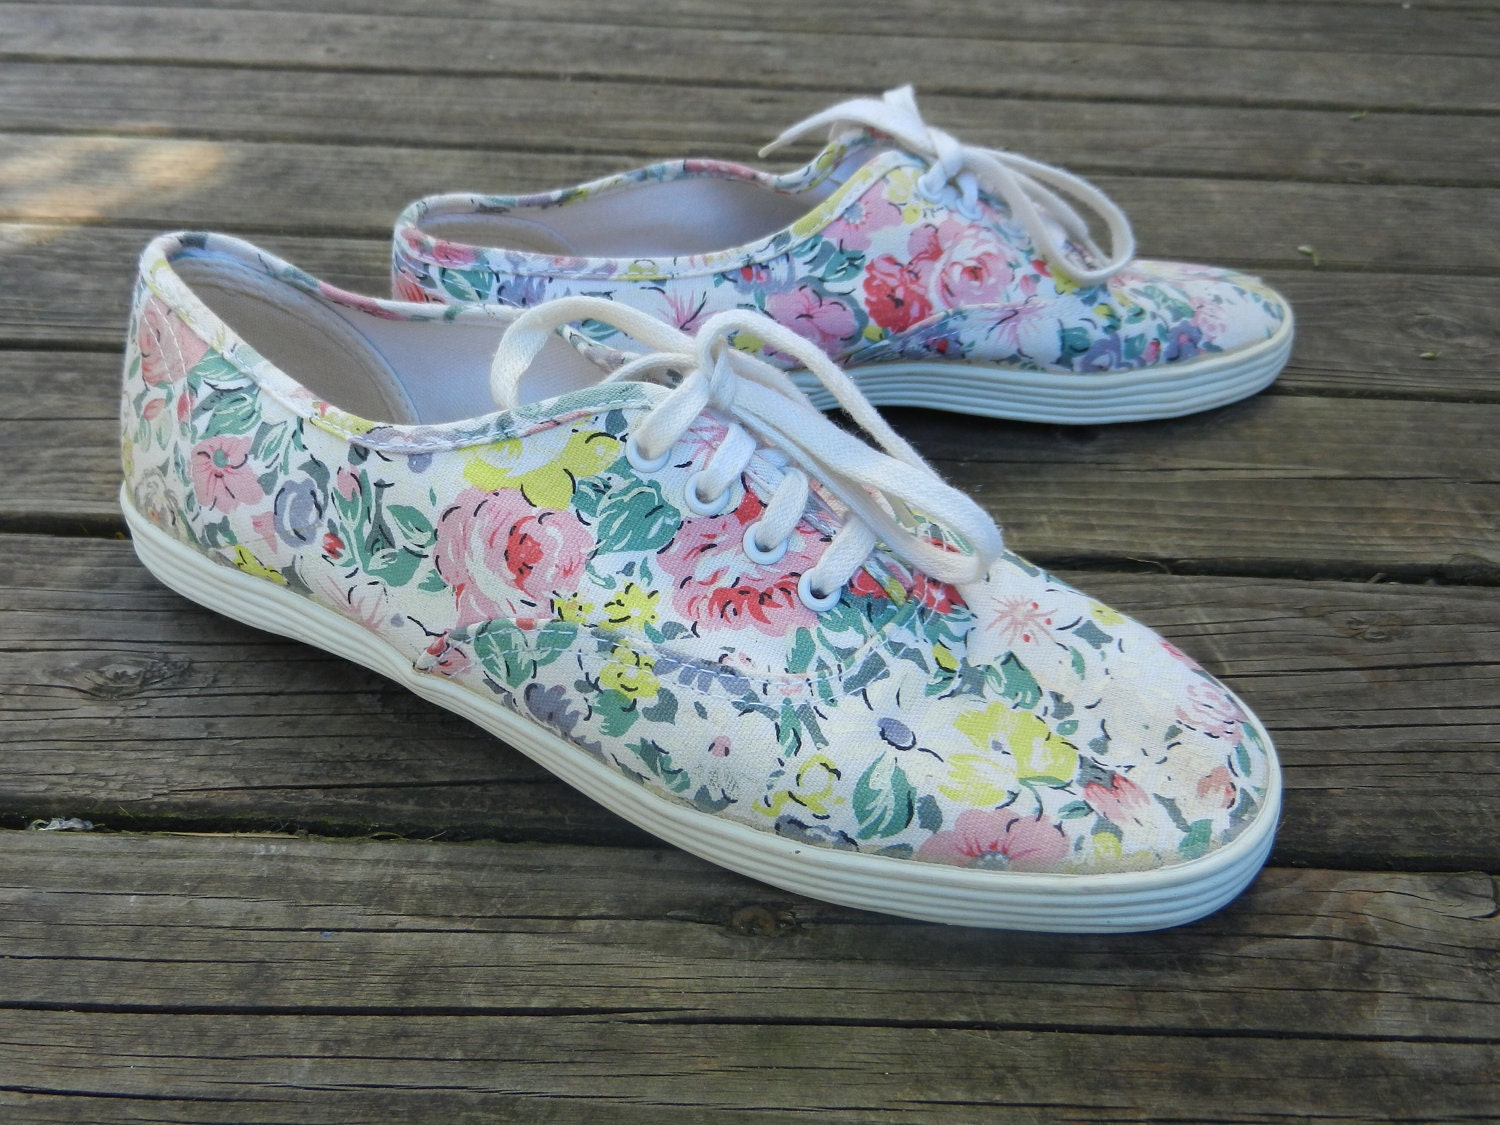 Creative 90s Dolly Shoes  90s Fashion  Pinterest